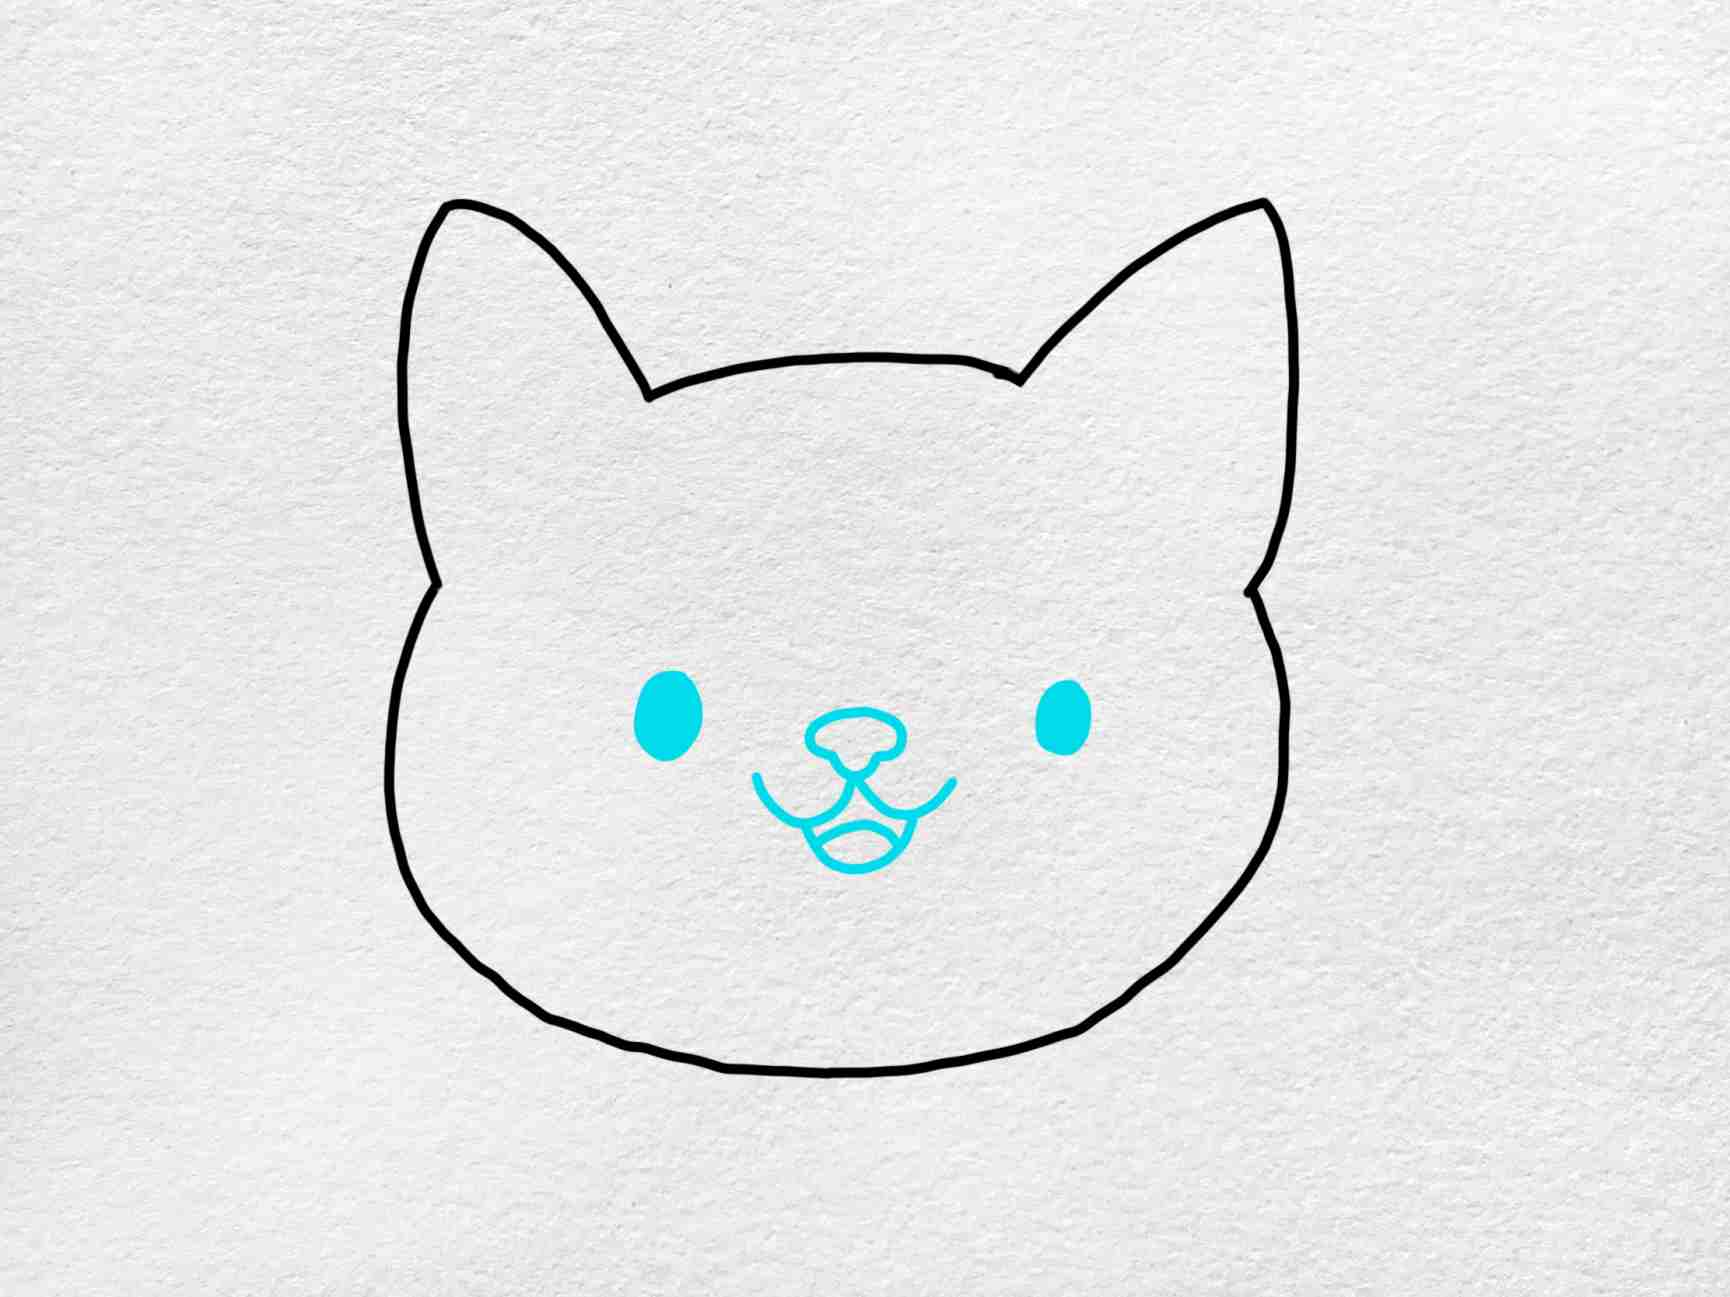 Easy Cat Face Drawing: Step 3